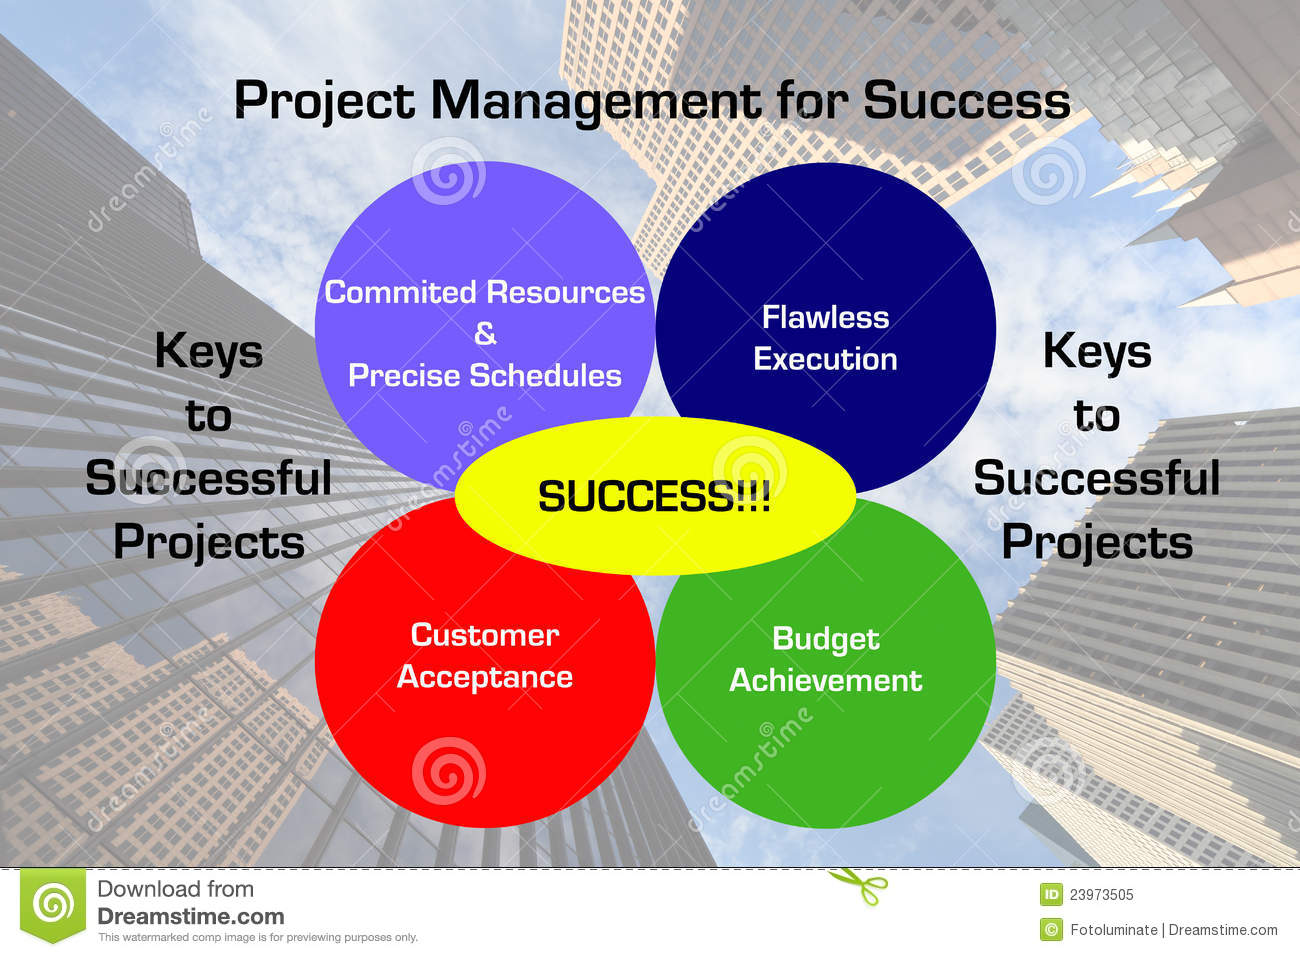 successful project management Pmi's project management professional (pmp) credential is the most important industry-recognized certification for project managers globally recognized and demanded, the pmp demonstrates that you have the experience, education, and competency to successfully lead and direct projects.